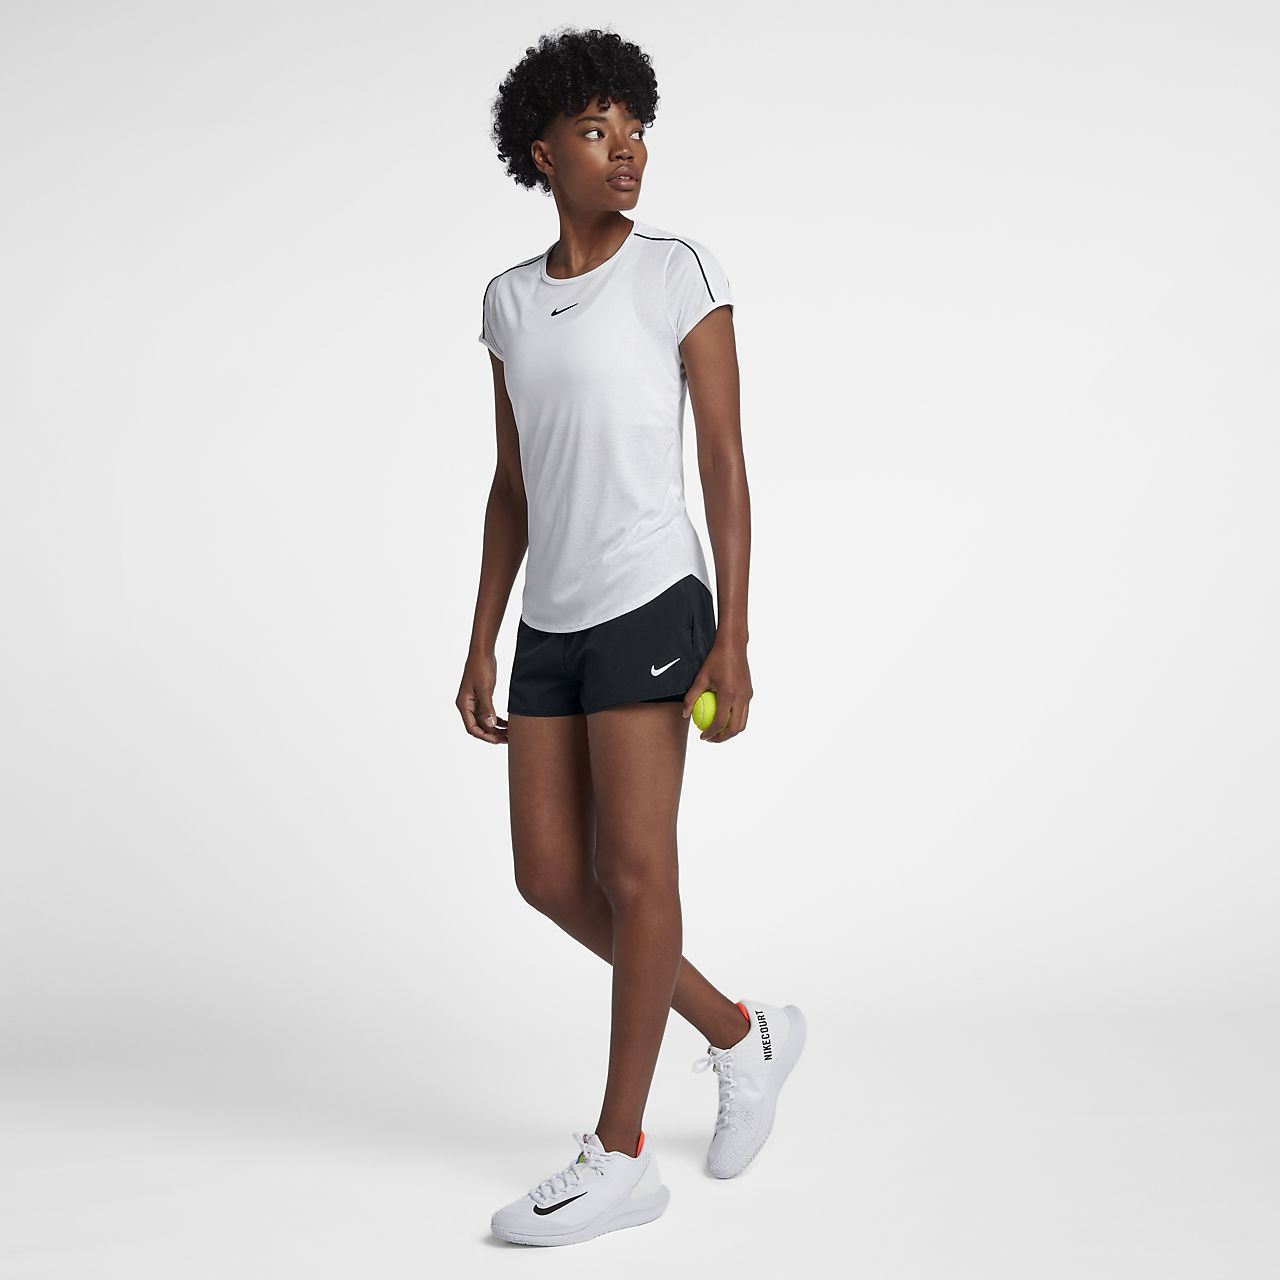 47f6a02cceb4 Low Resolution NikeCourt Flex Women s Tennis Shorts NikeCourt Flex Women s  Tennis Shorts